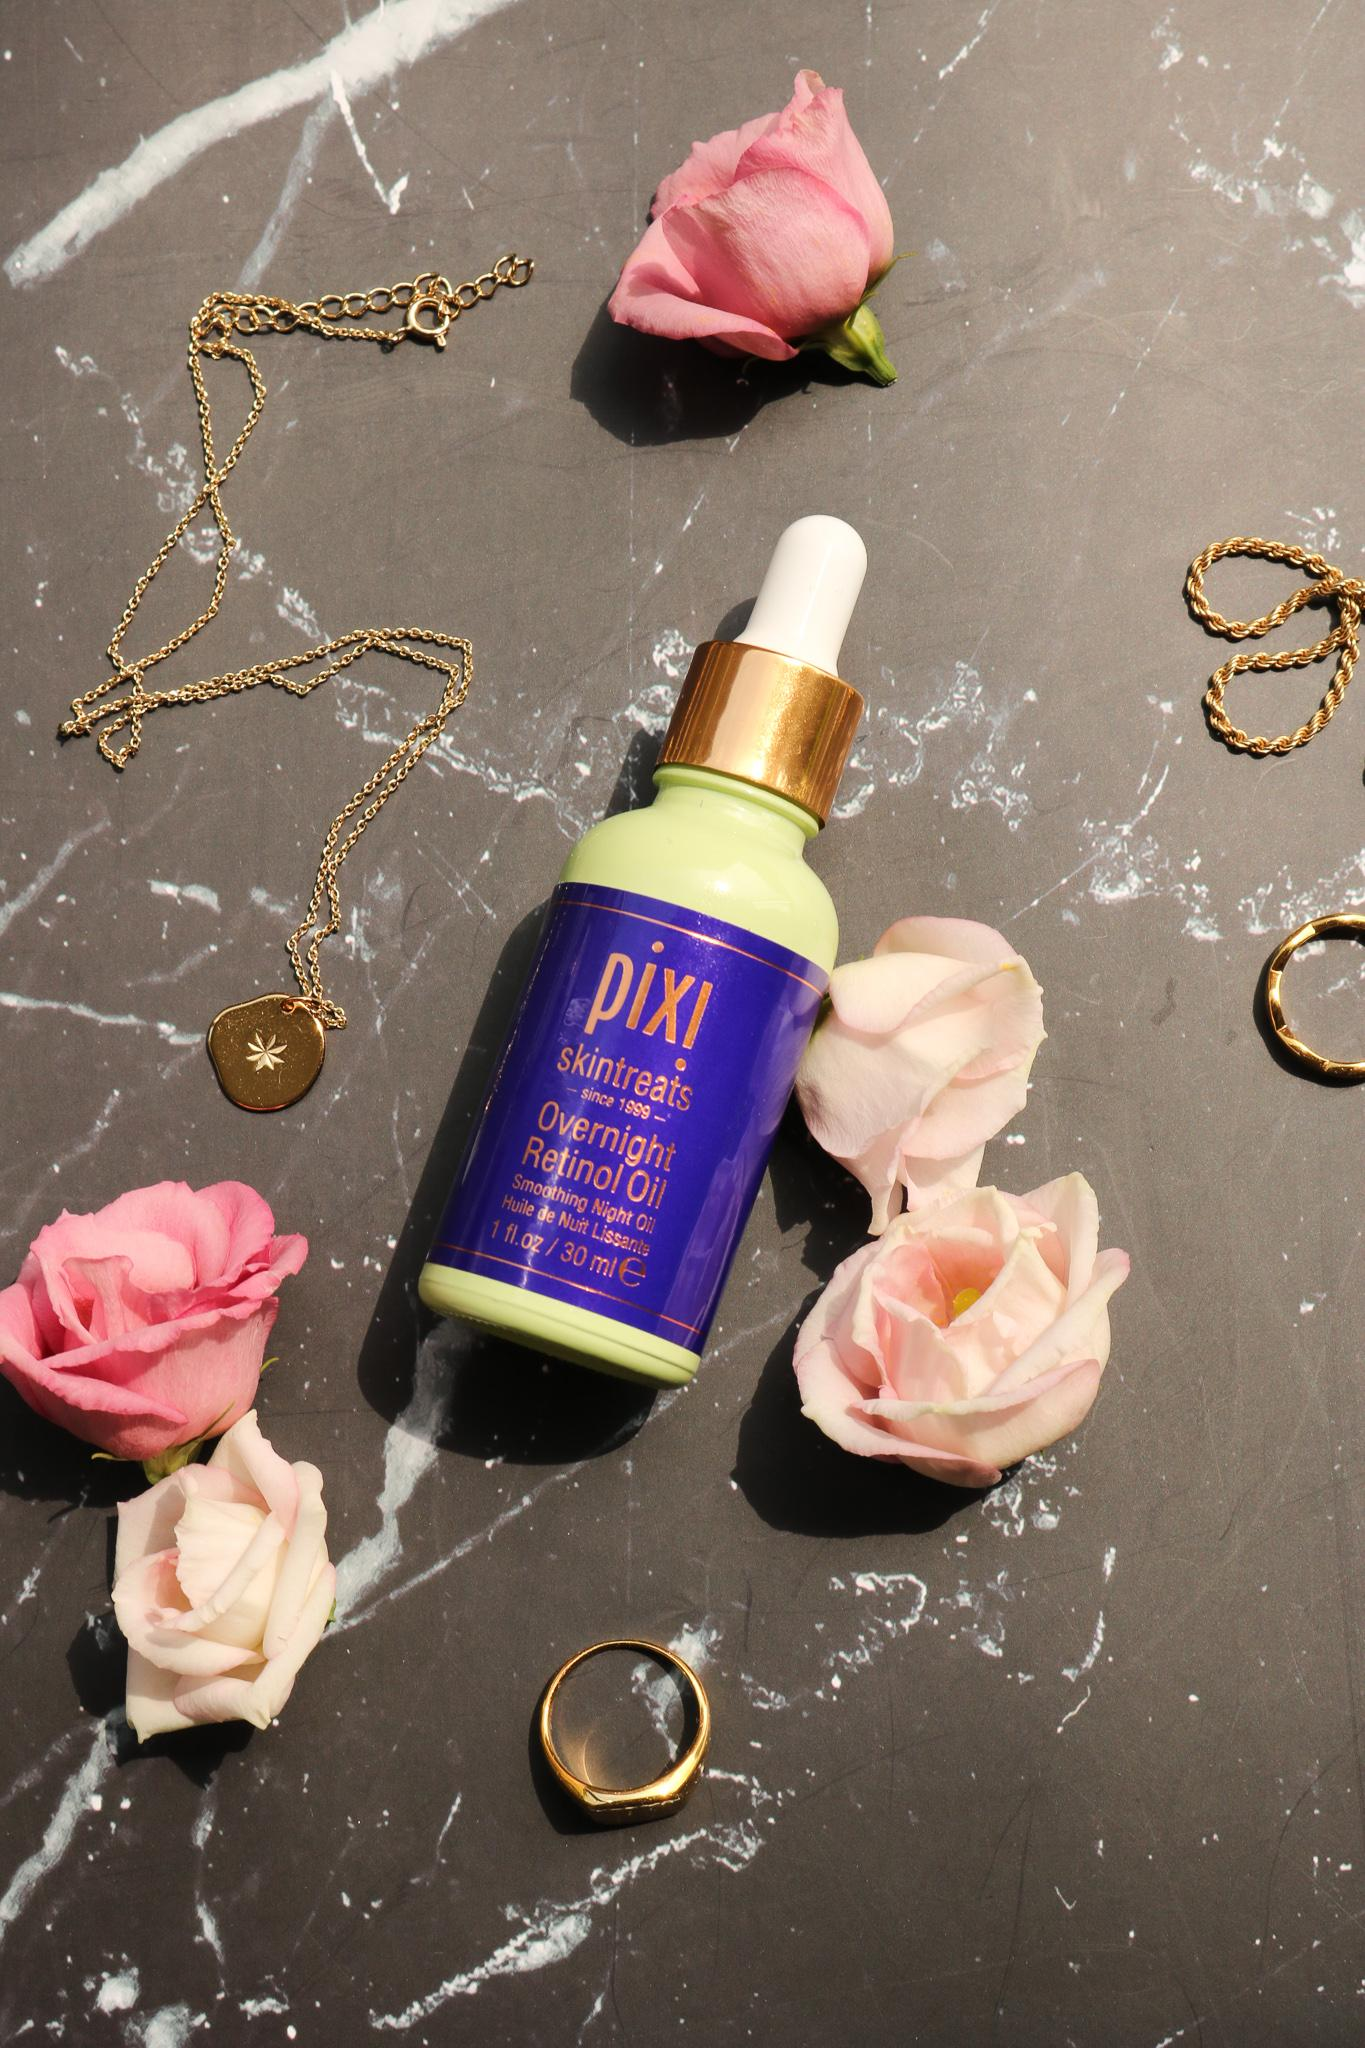 pixi beauty overnight retinol oil